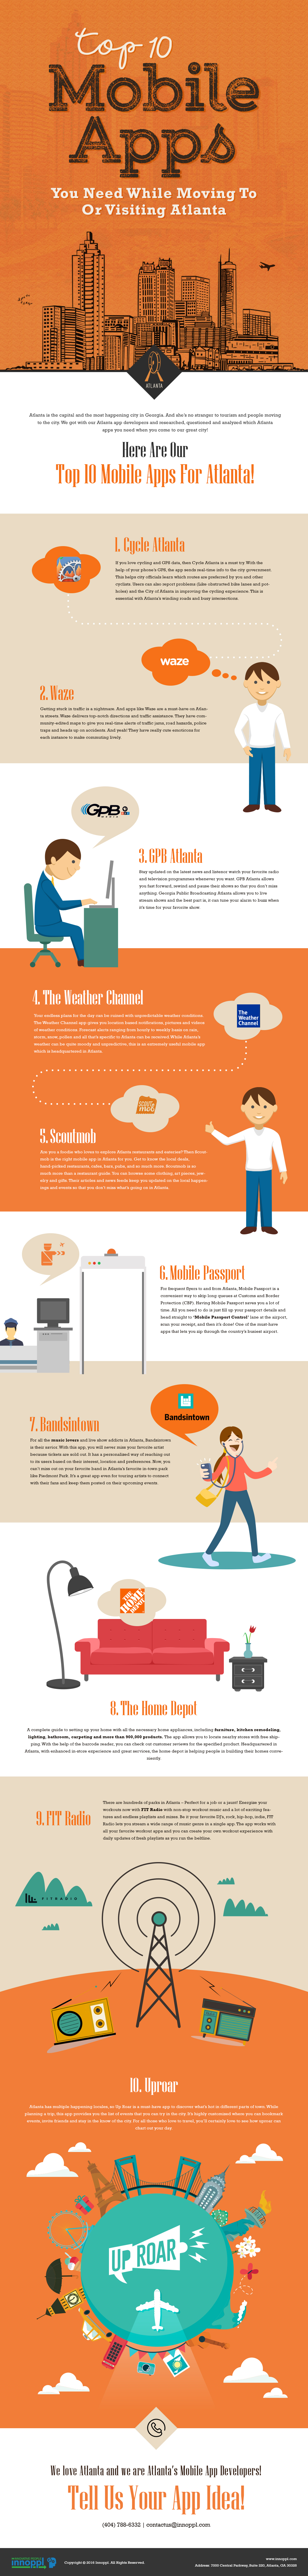 Top 10 Mobile Apps You Need When Moving To Or Visiting Atlanta [Infographic]